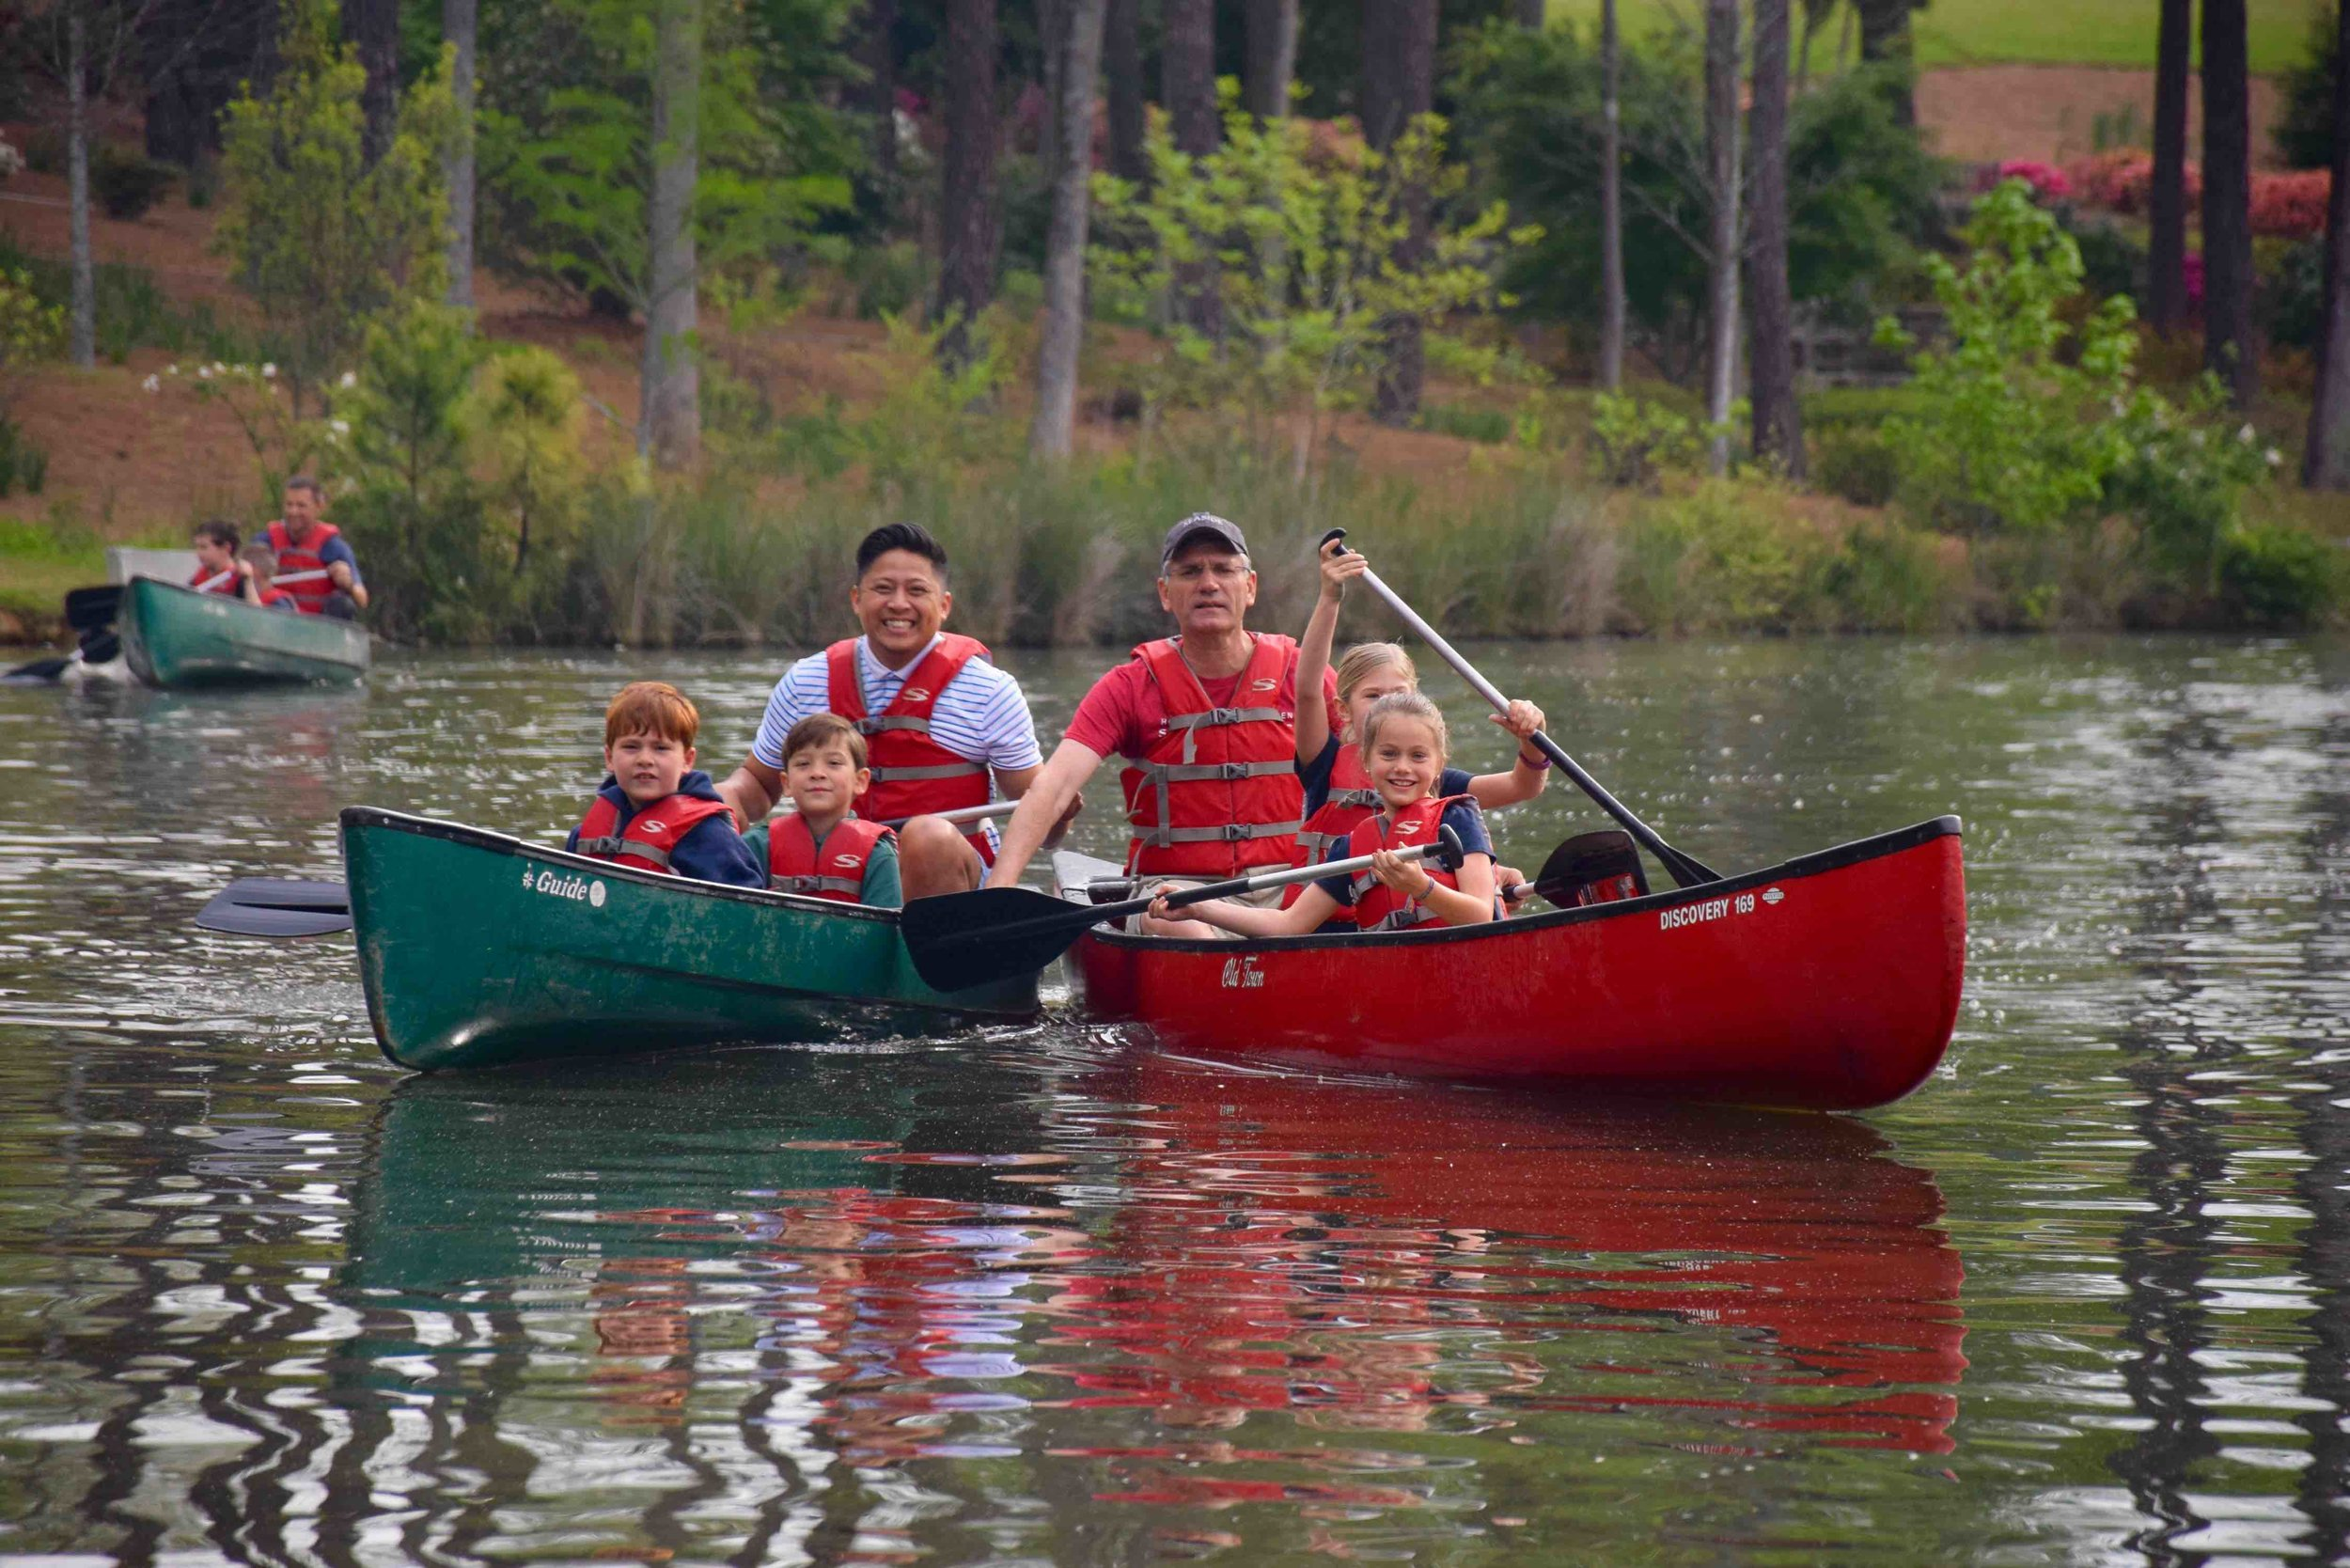 Canoe_EnrichmentDay_Small.jpg